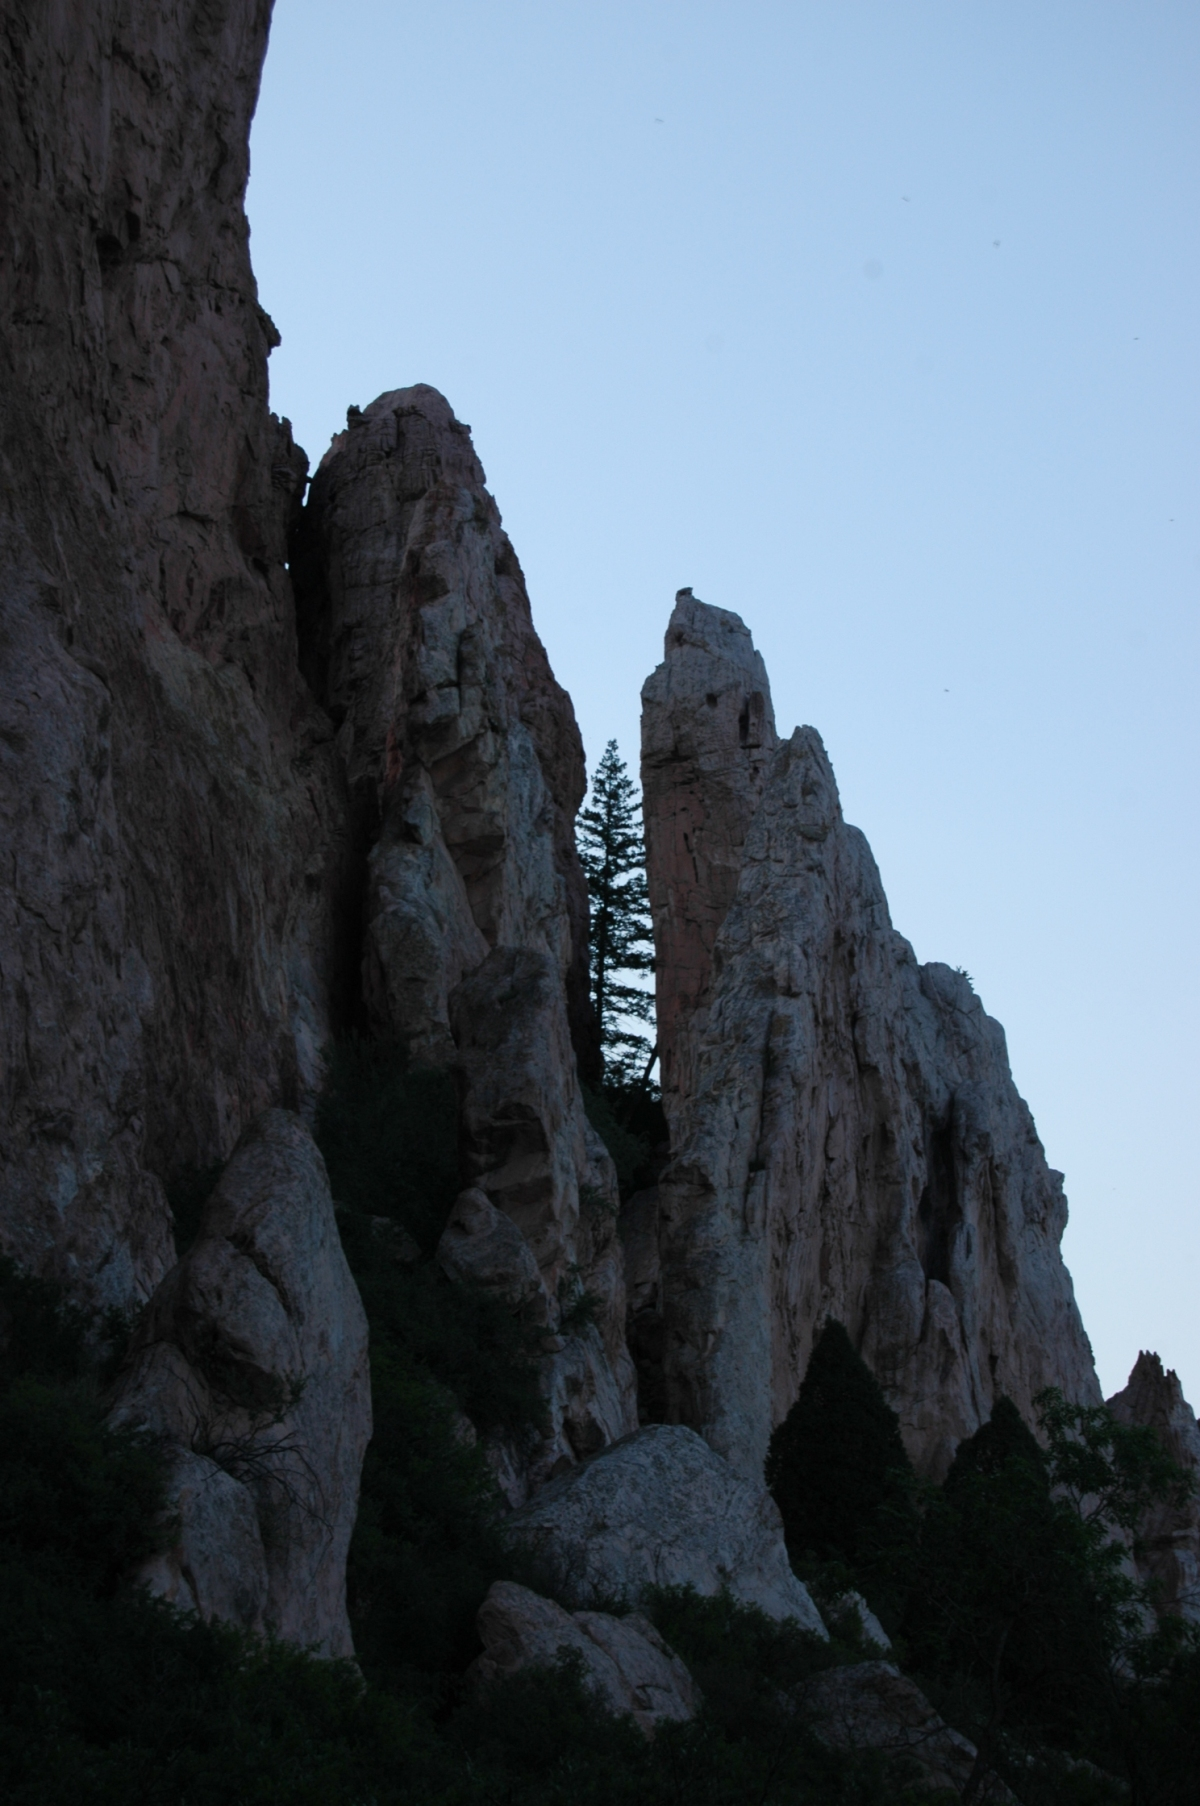 Tree growing between two mountains - Glen Eyrie, Colorado Springs, CO